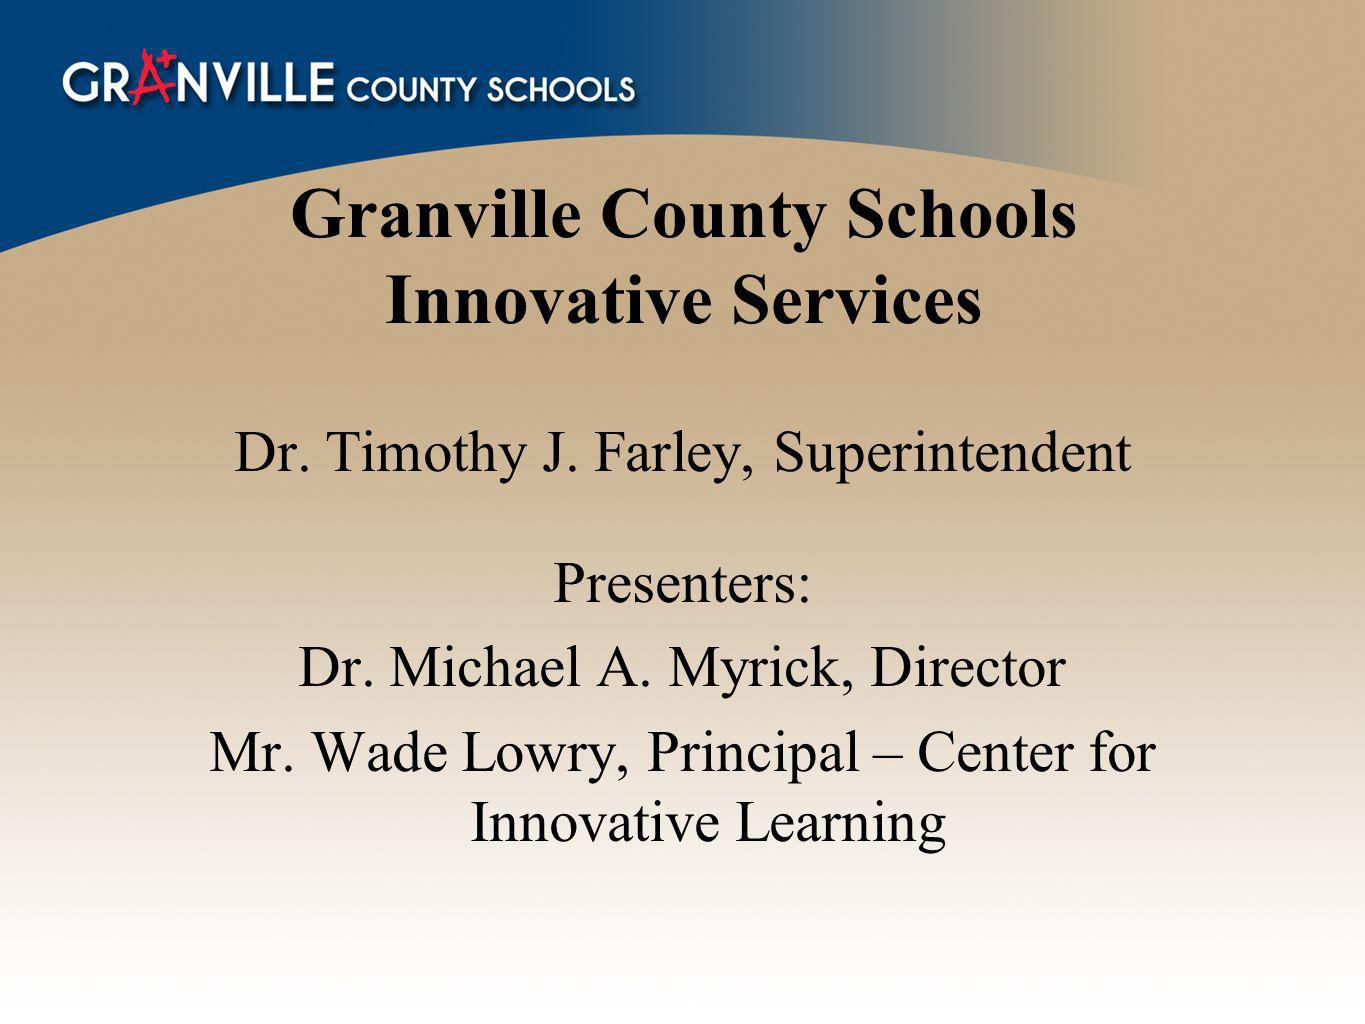 Granville County Schools Innovative Services